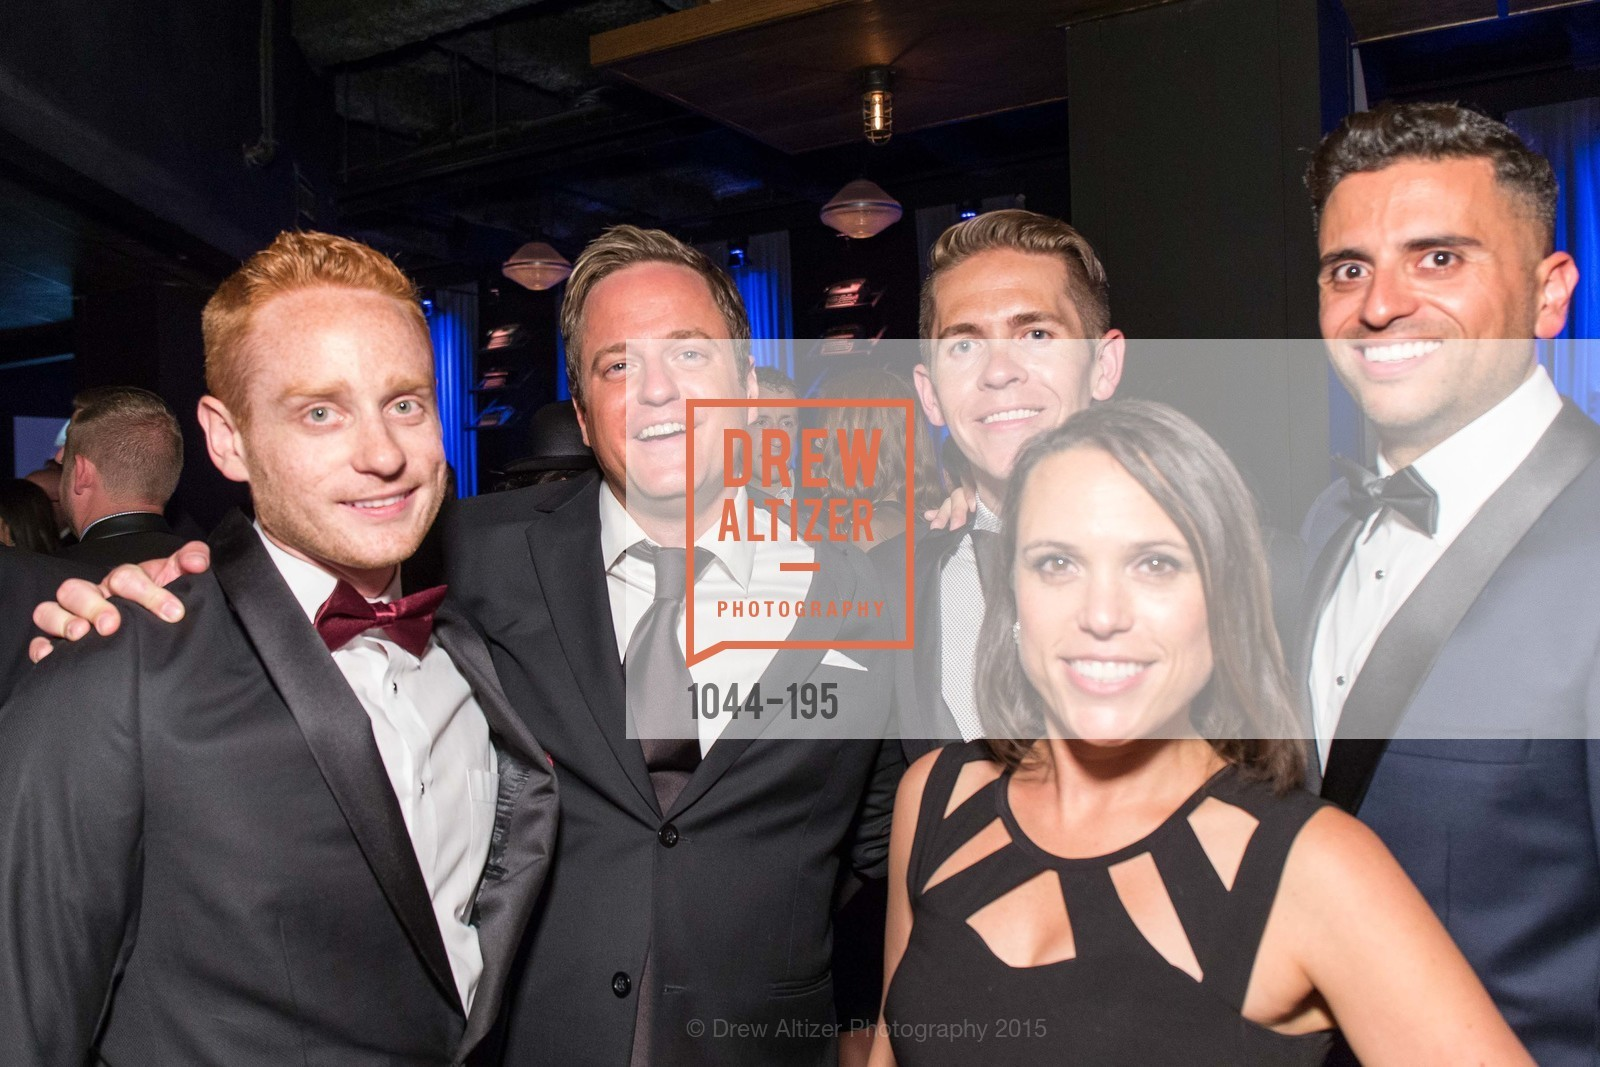 Harrison Malone, Mark Decloux, Zach Shubkagel, Laura Pallin, Matt Wathen, Climb Real Estate and Sindeo Celebrate the Launch of Million Dollar Listing San Francisco, Local Edition San Francisco. 691 Market St, July 8th, 2015,Drew Altizer, Drew Altizer Photography, full-service event agency, private events, San Francisco photographer, photographer California